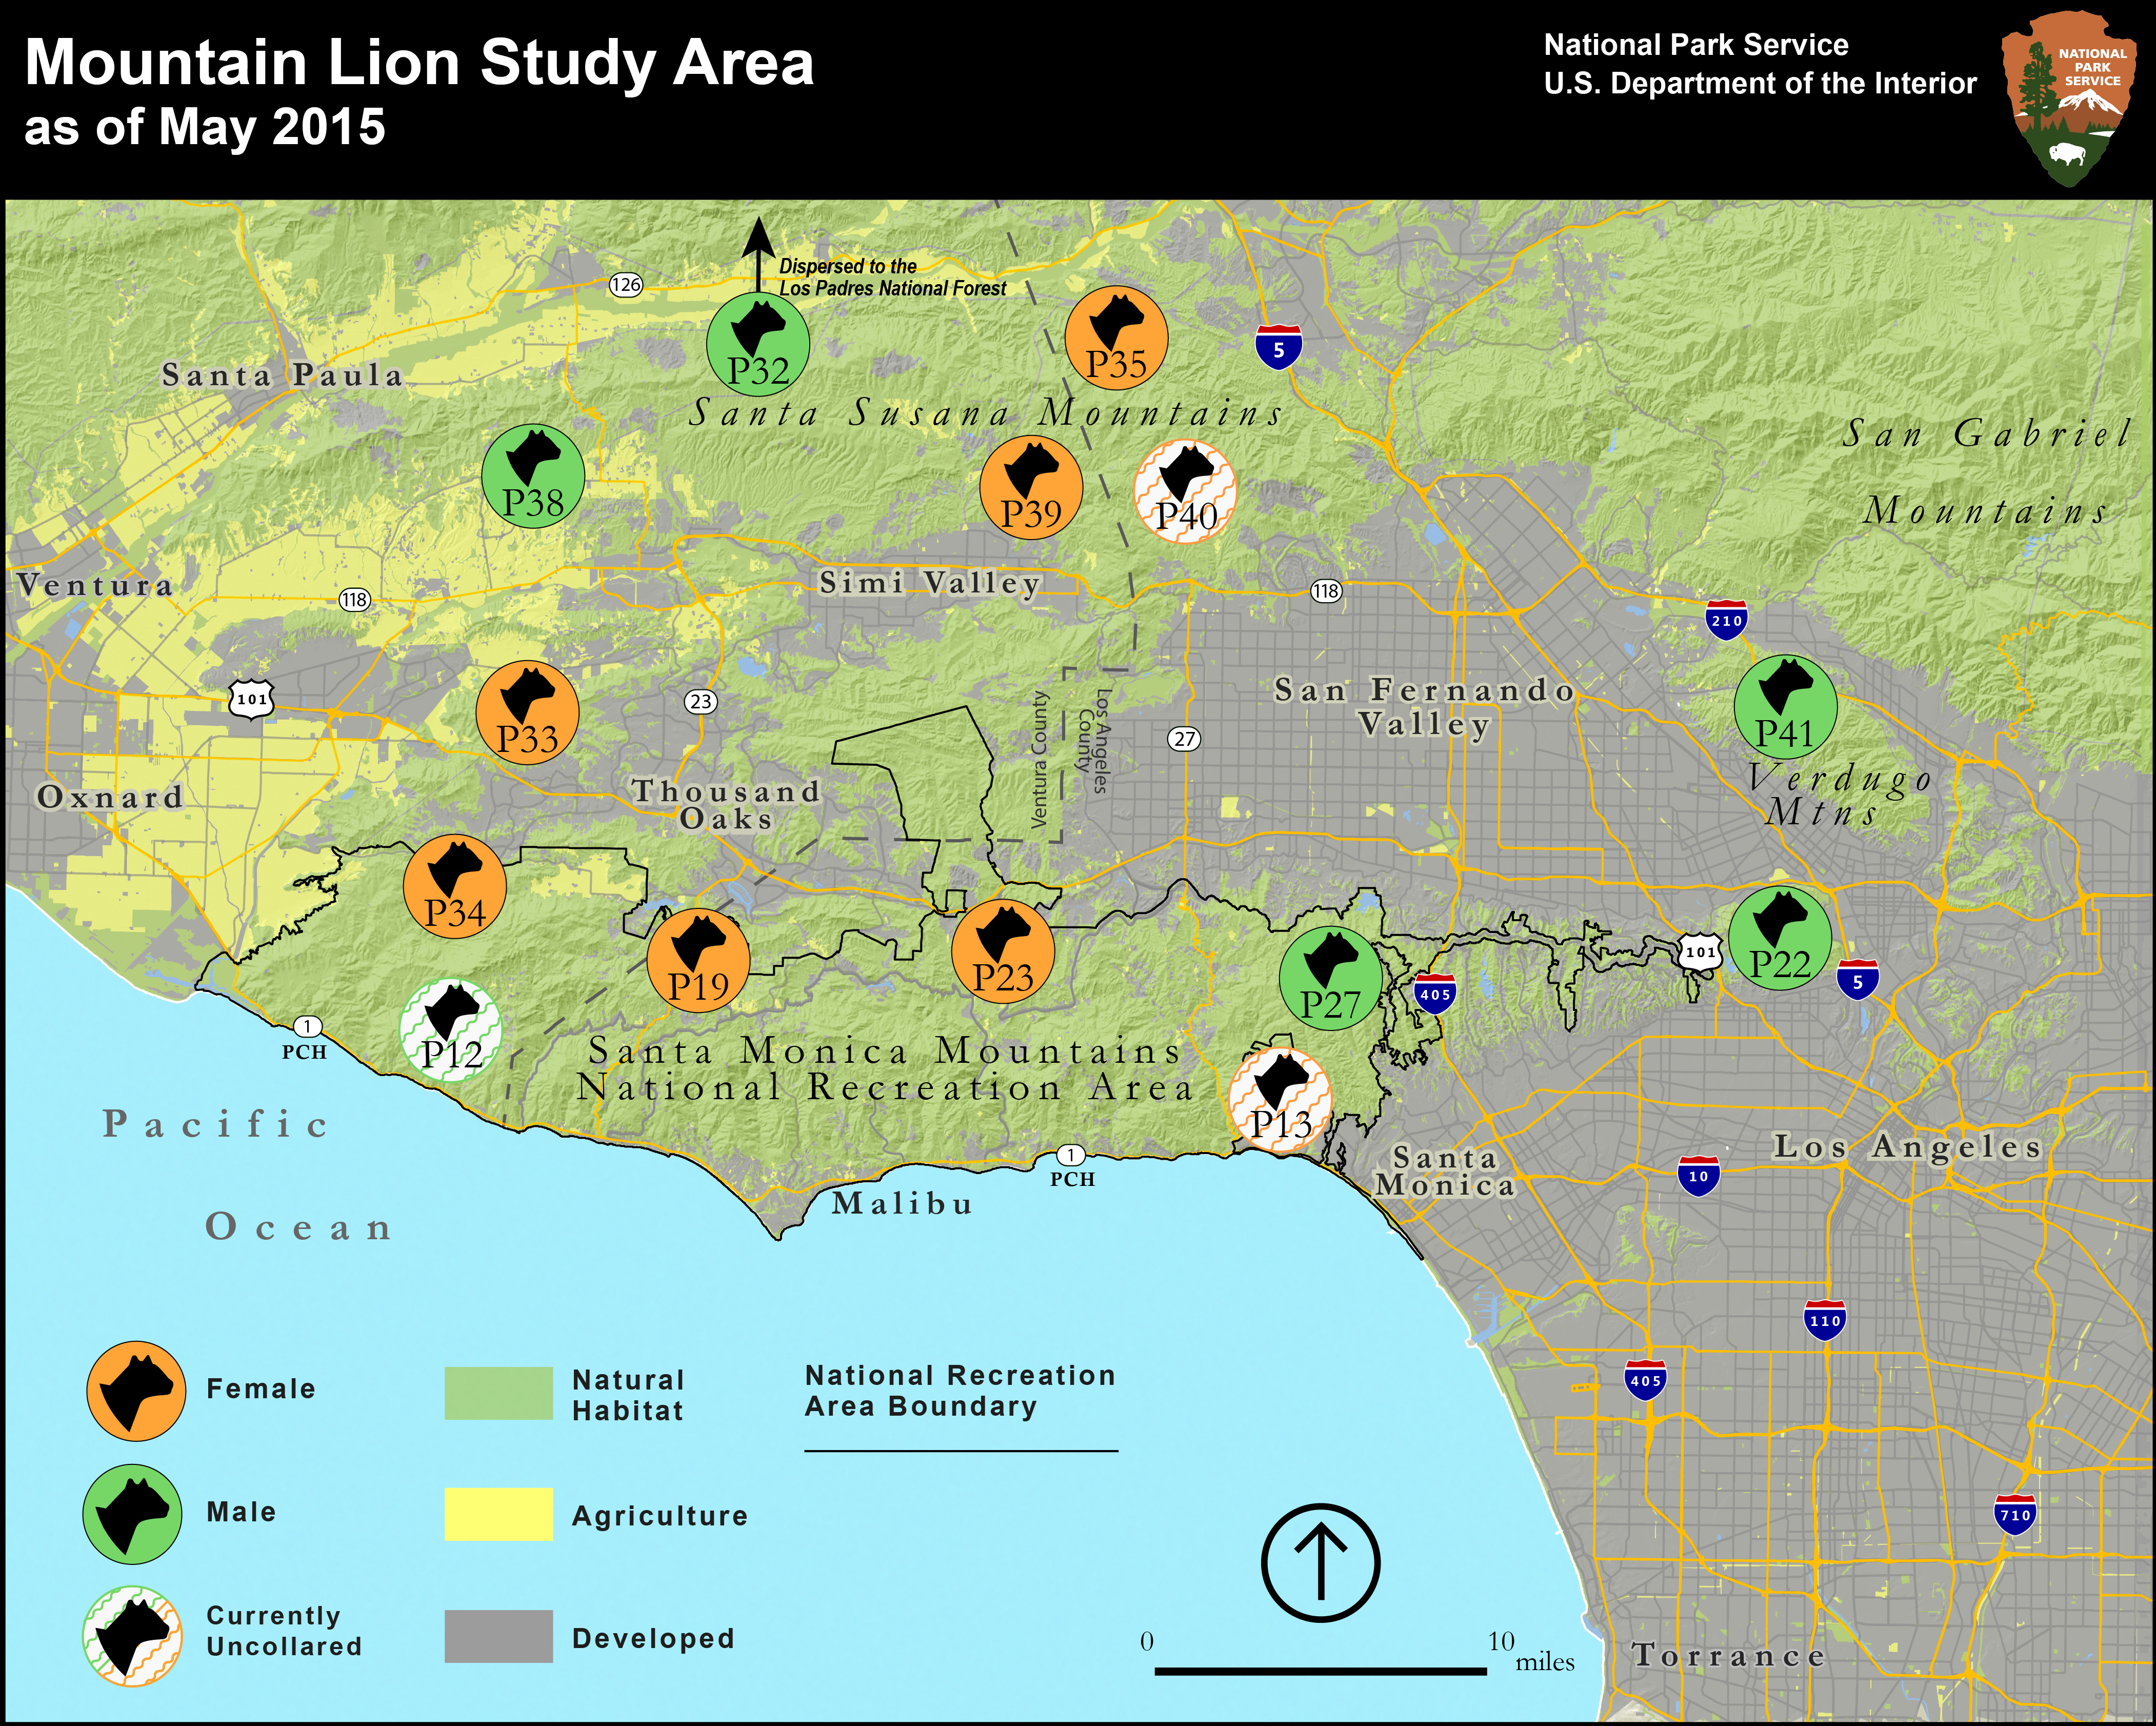 National Park Service Begins Tracking Mountain Lions In The - Los angeles pollution map